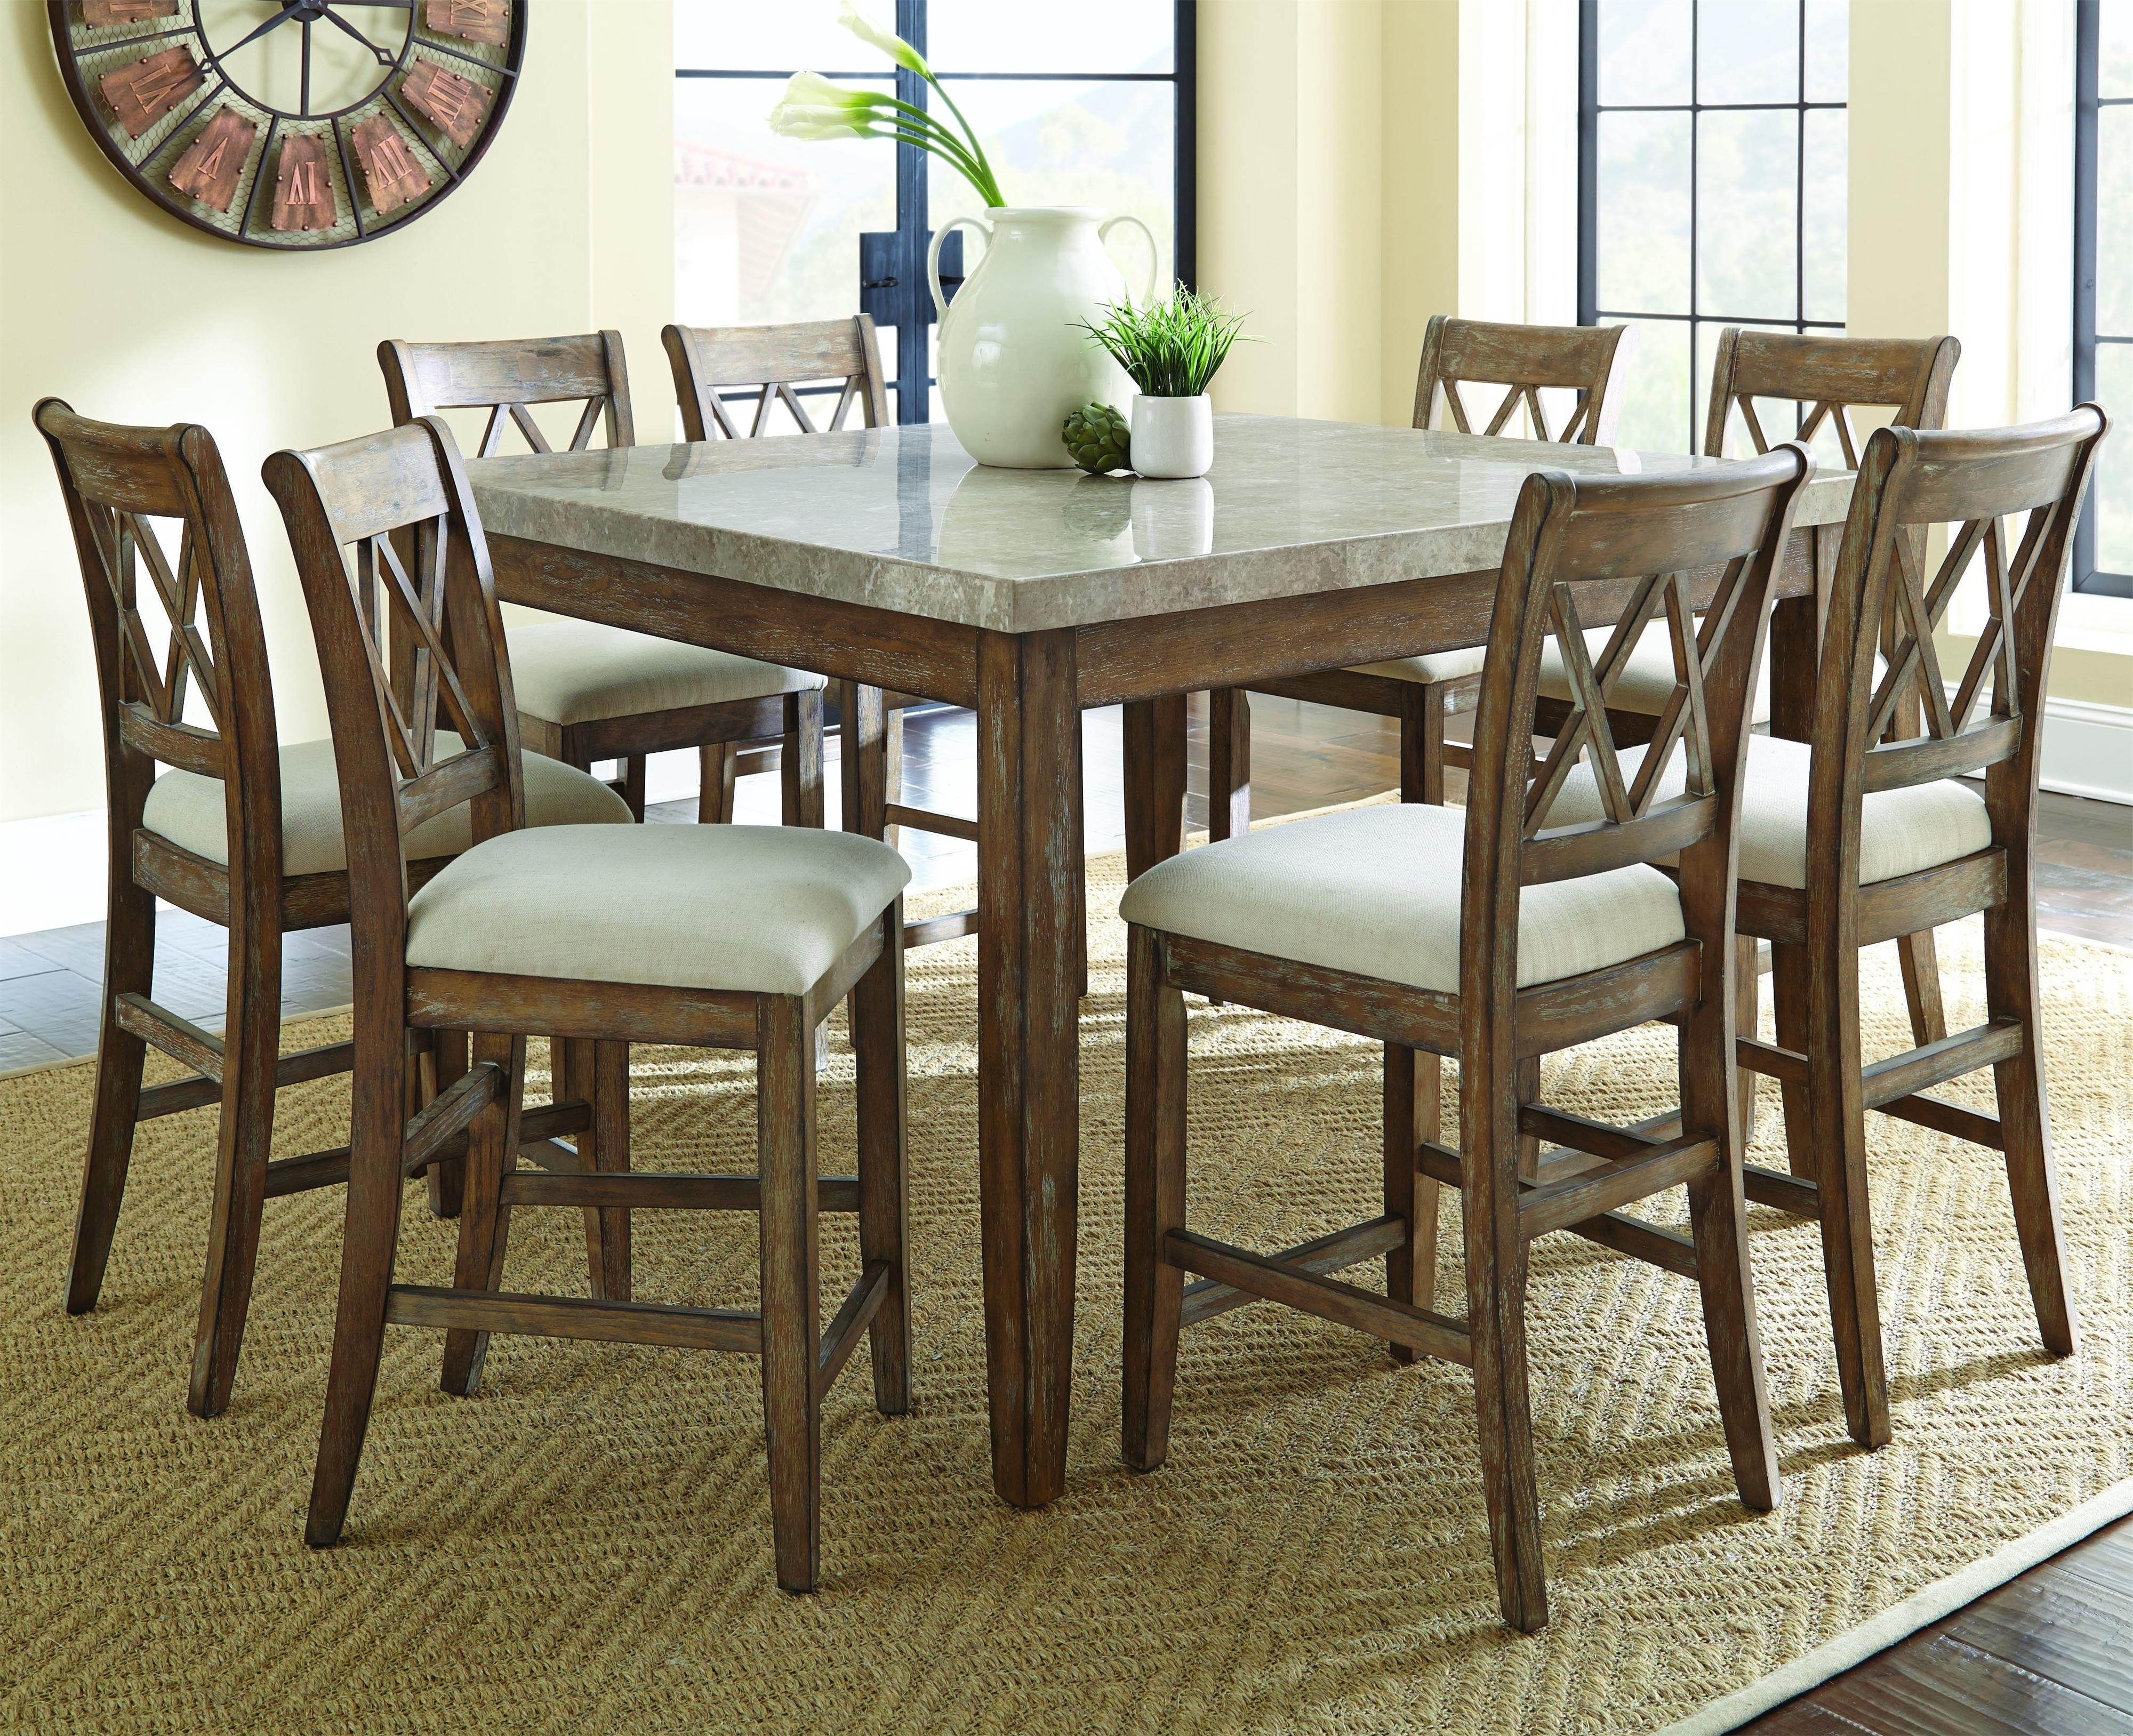 Current Chapleau Ii 9 Piece Extension Dining Table Sets For Cheery Caira Piece Extension Set Back Chairs Caira Piece Extension (View 11 of 25)